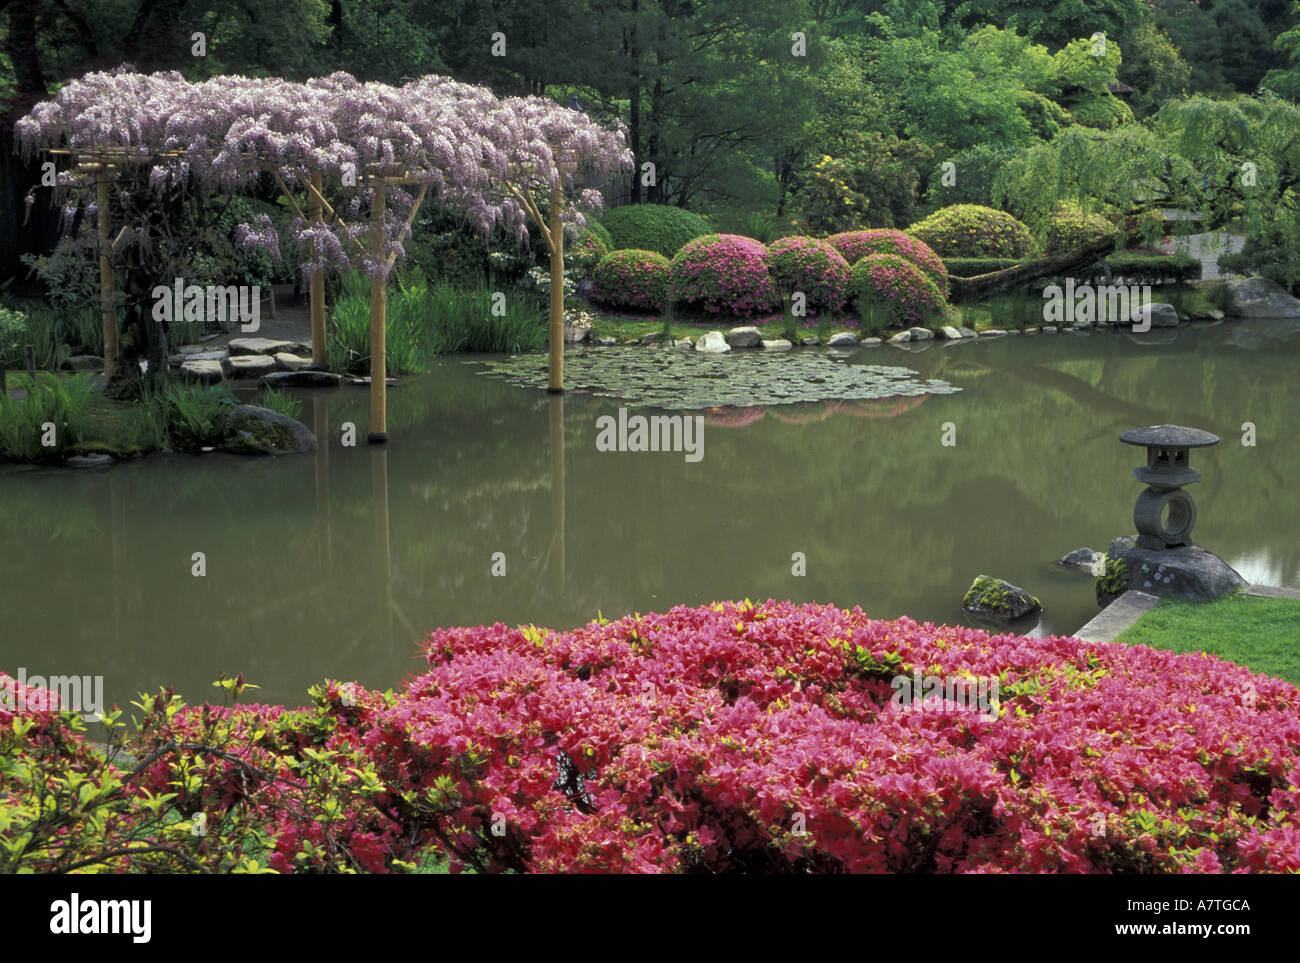 USA, Washington, Seattle, Washington Park Arboretum, Japanese Garden,  Spring, Rhododendrons And Wysteria